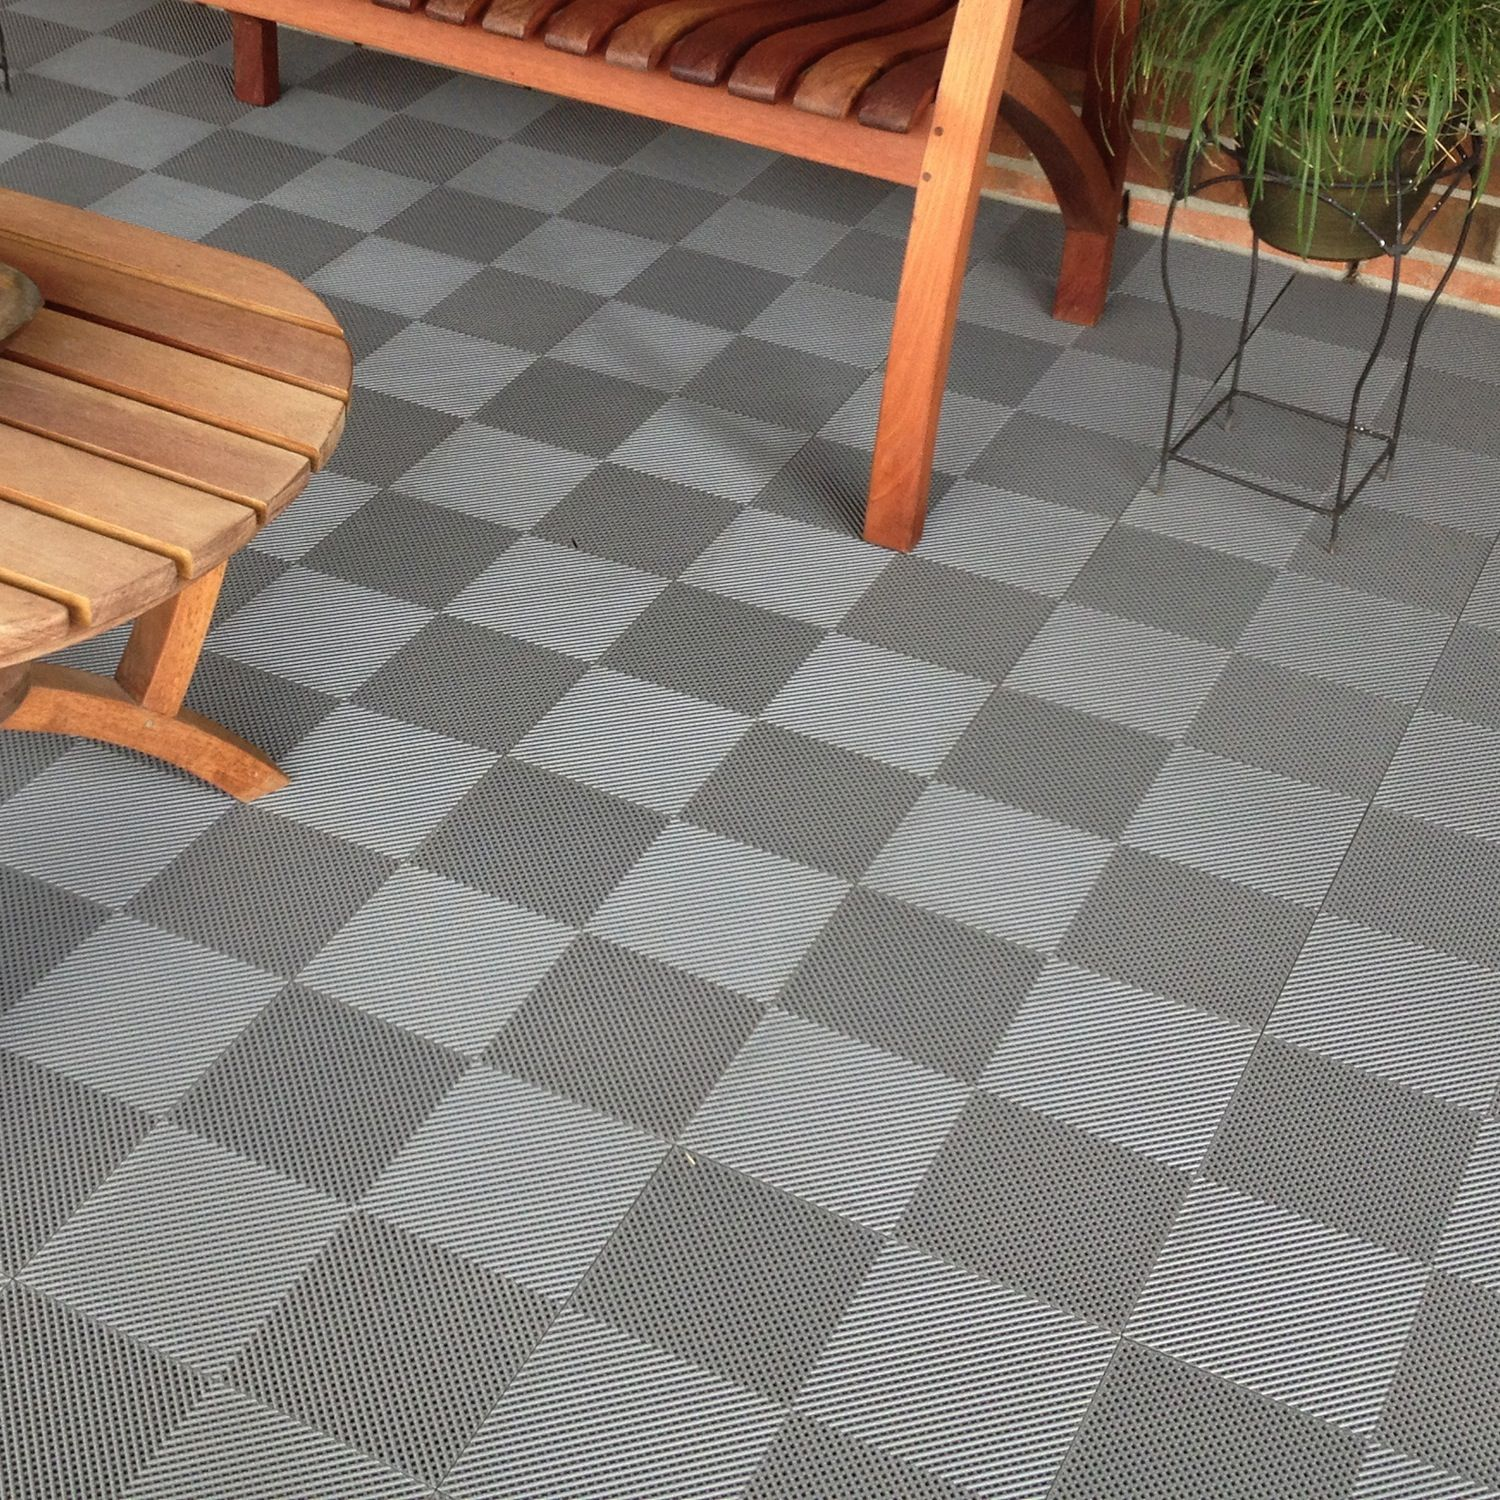 Captivating Spruce Up Your Deck Or Patio Flooring Using DIY Interlocking Perforated  Floor Tiles. These Interlocking